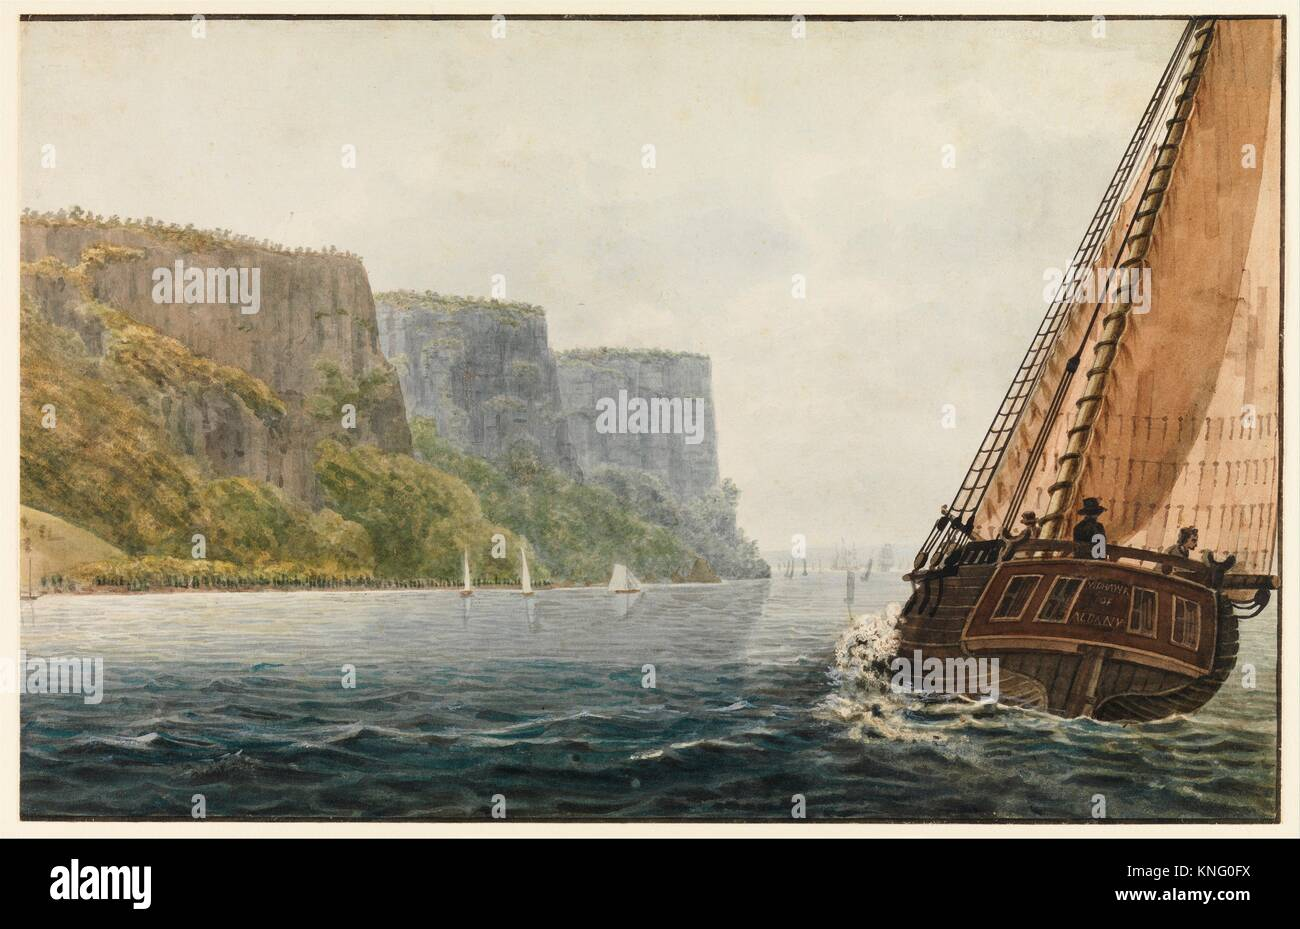 The Packet Mohawk of Albany Passing the Palisades. Artist: Pavel Petrovich Svinin (1787/88-1839); Date: 1811-ca. - Stock Image